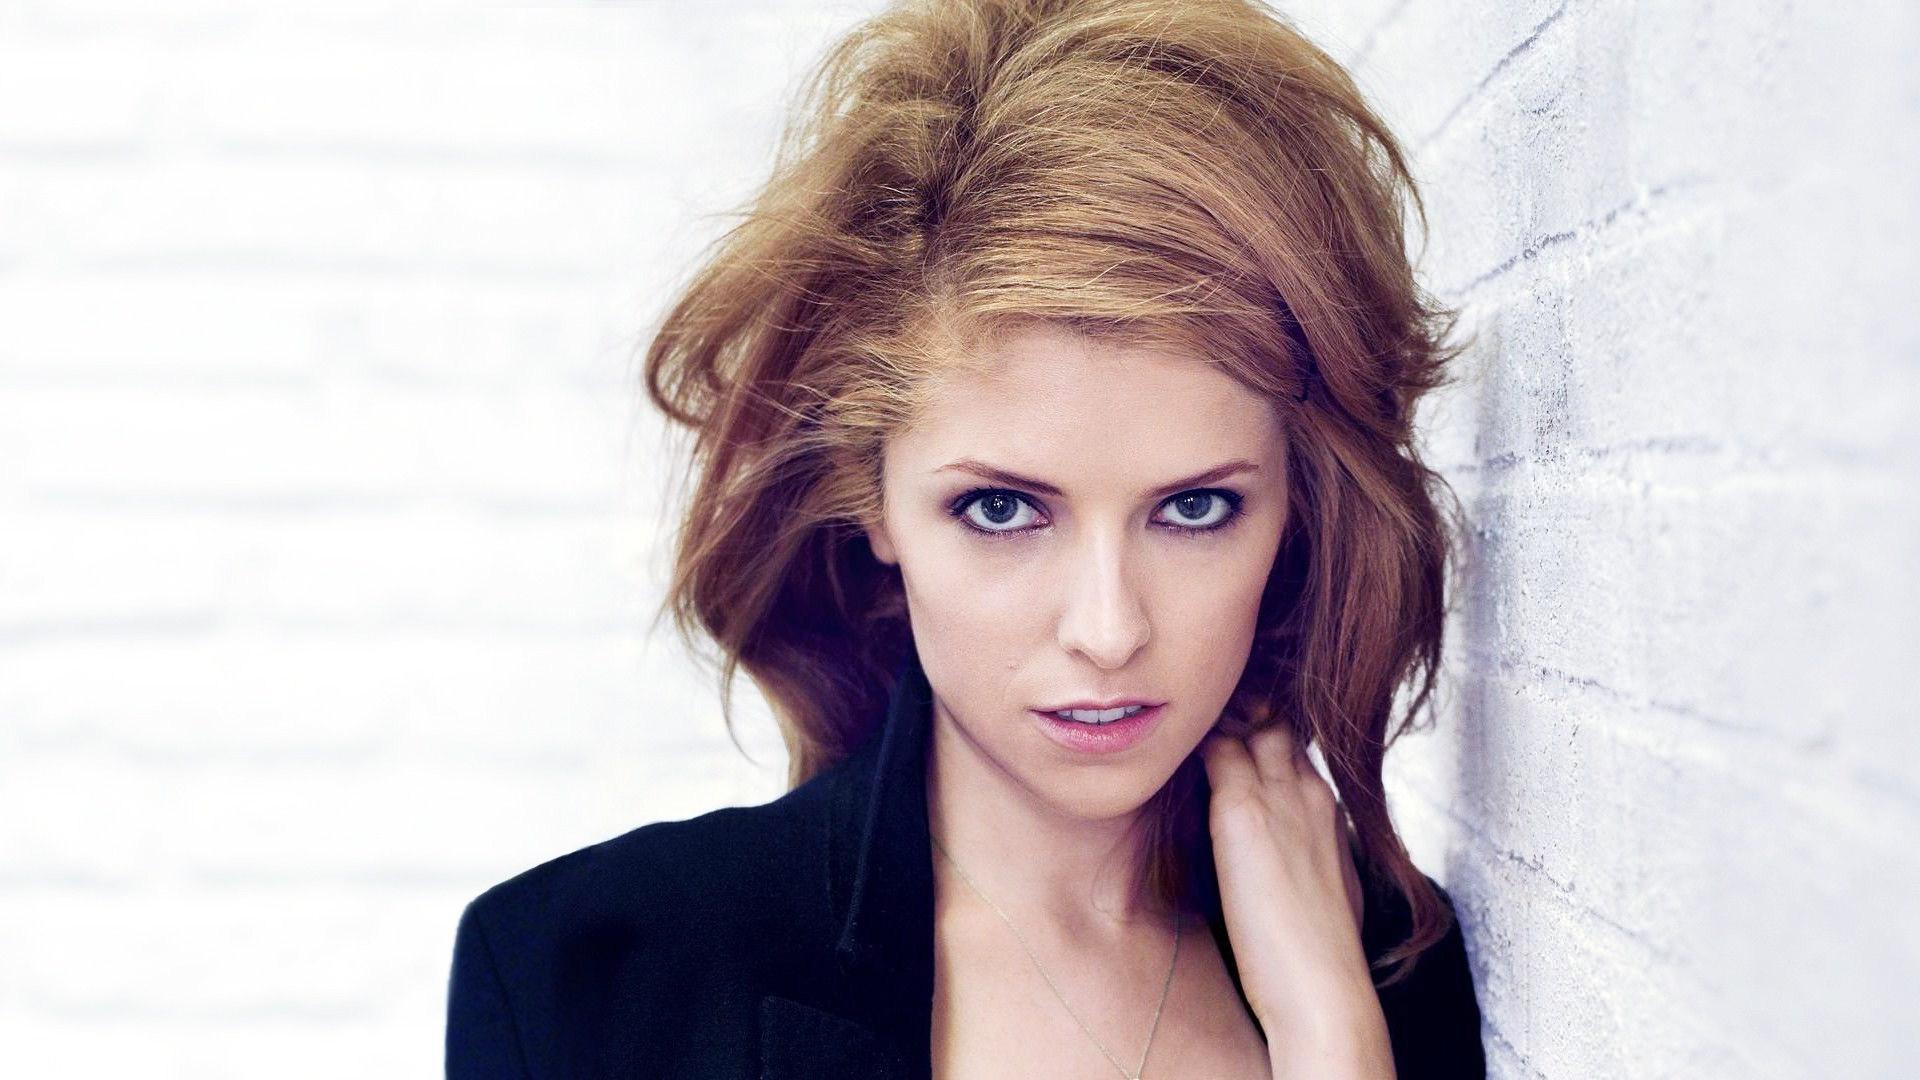 anna-kendrick-background-hd-1920%C3%971080-wallpaper-wp3602619